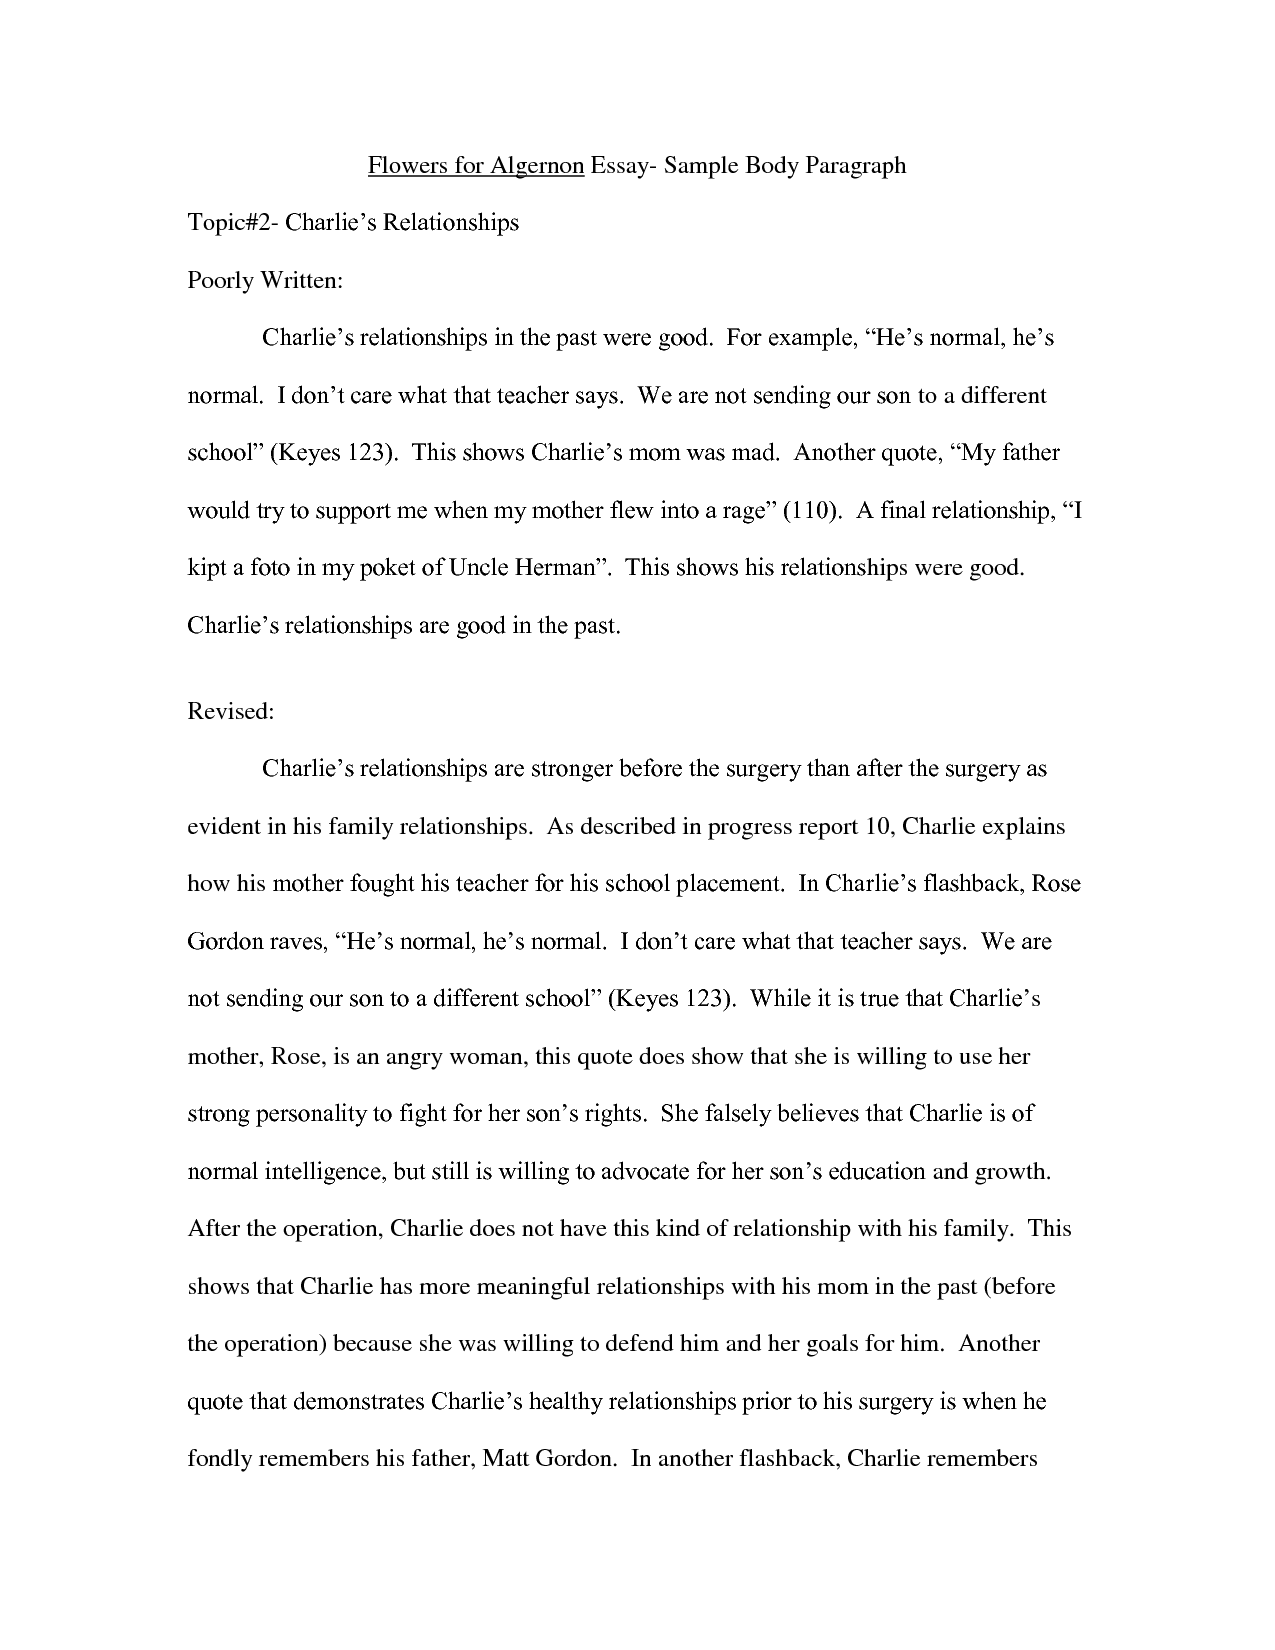 Examples of long quotes in an essay compare and contrast movie essay sample